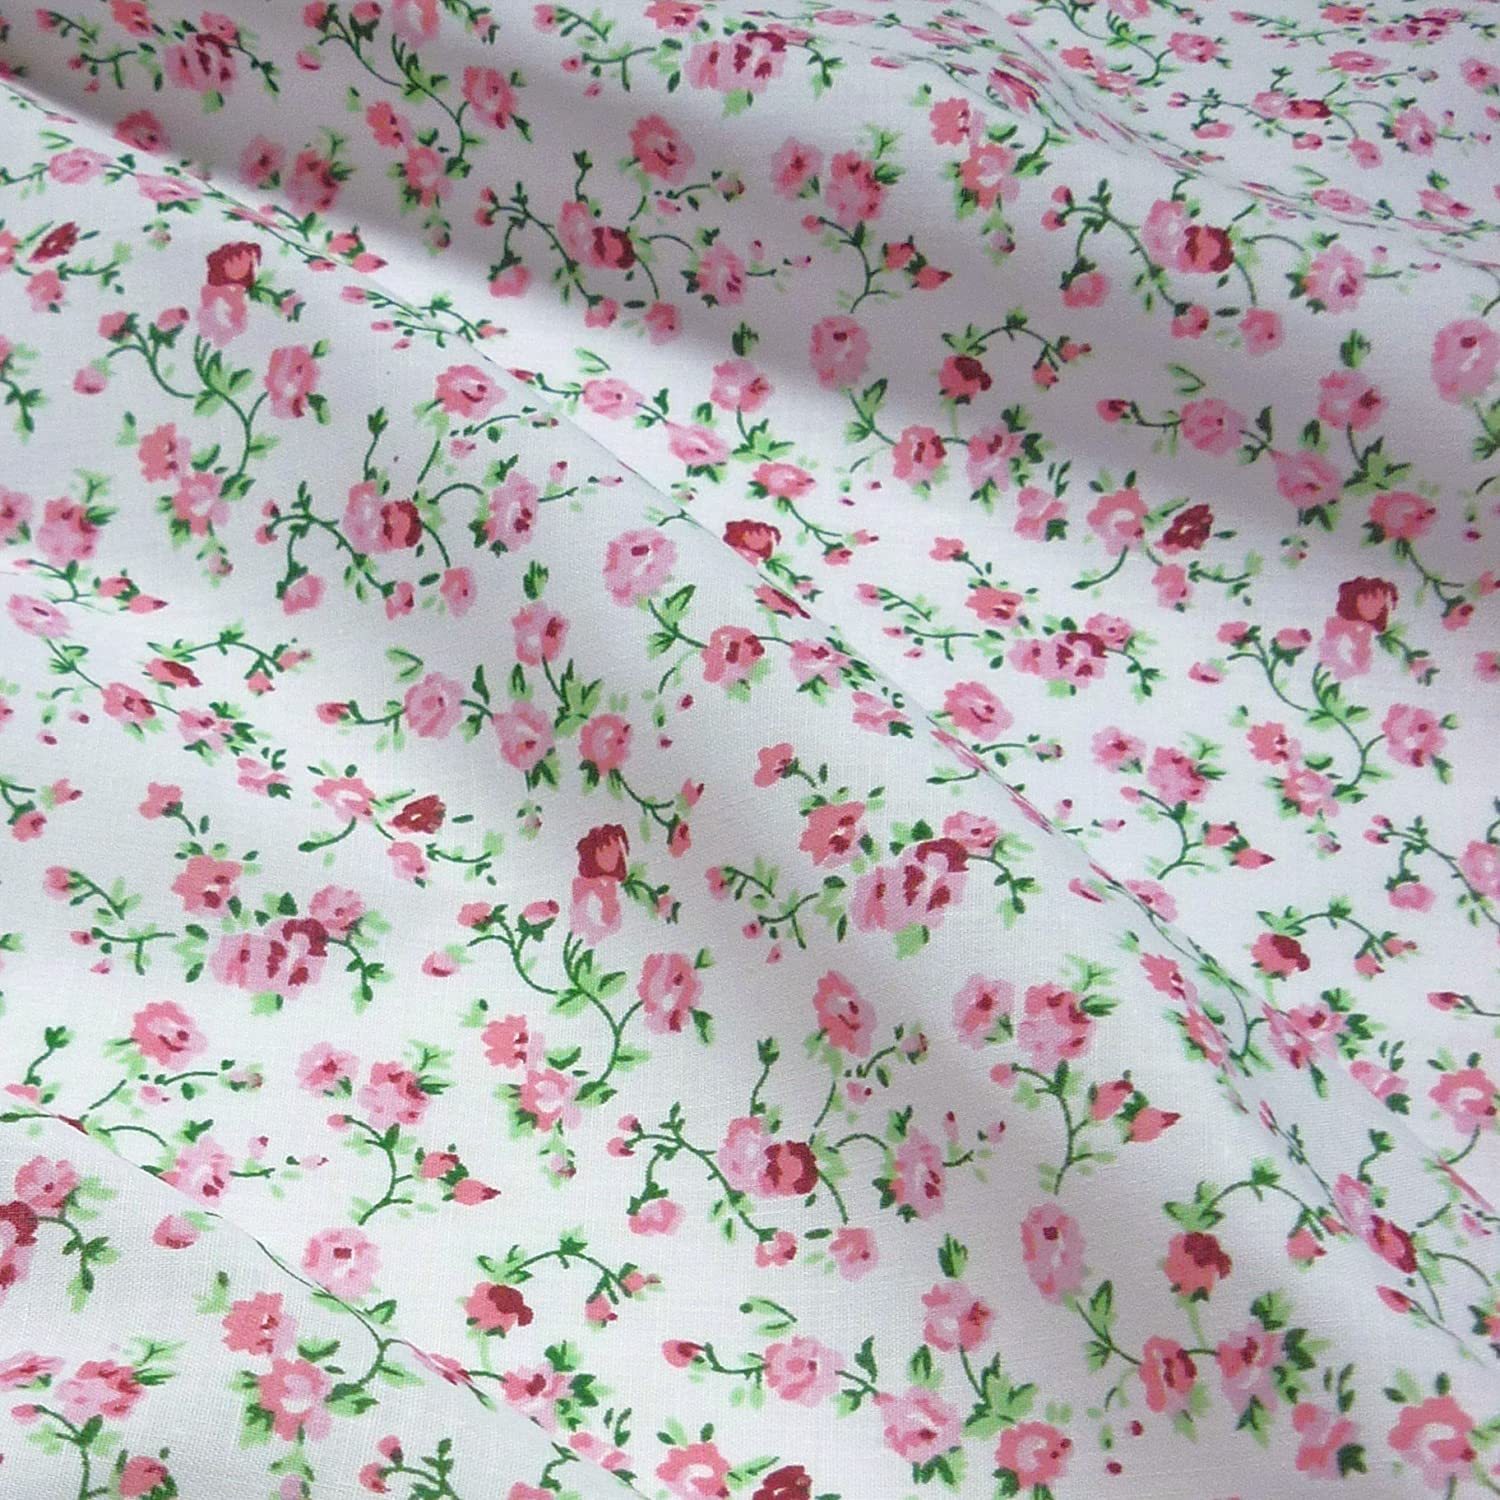 White Polycotton Fabric with Delicate Pink Flowers (Per Metre) Nortex Mill